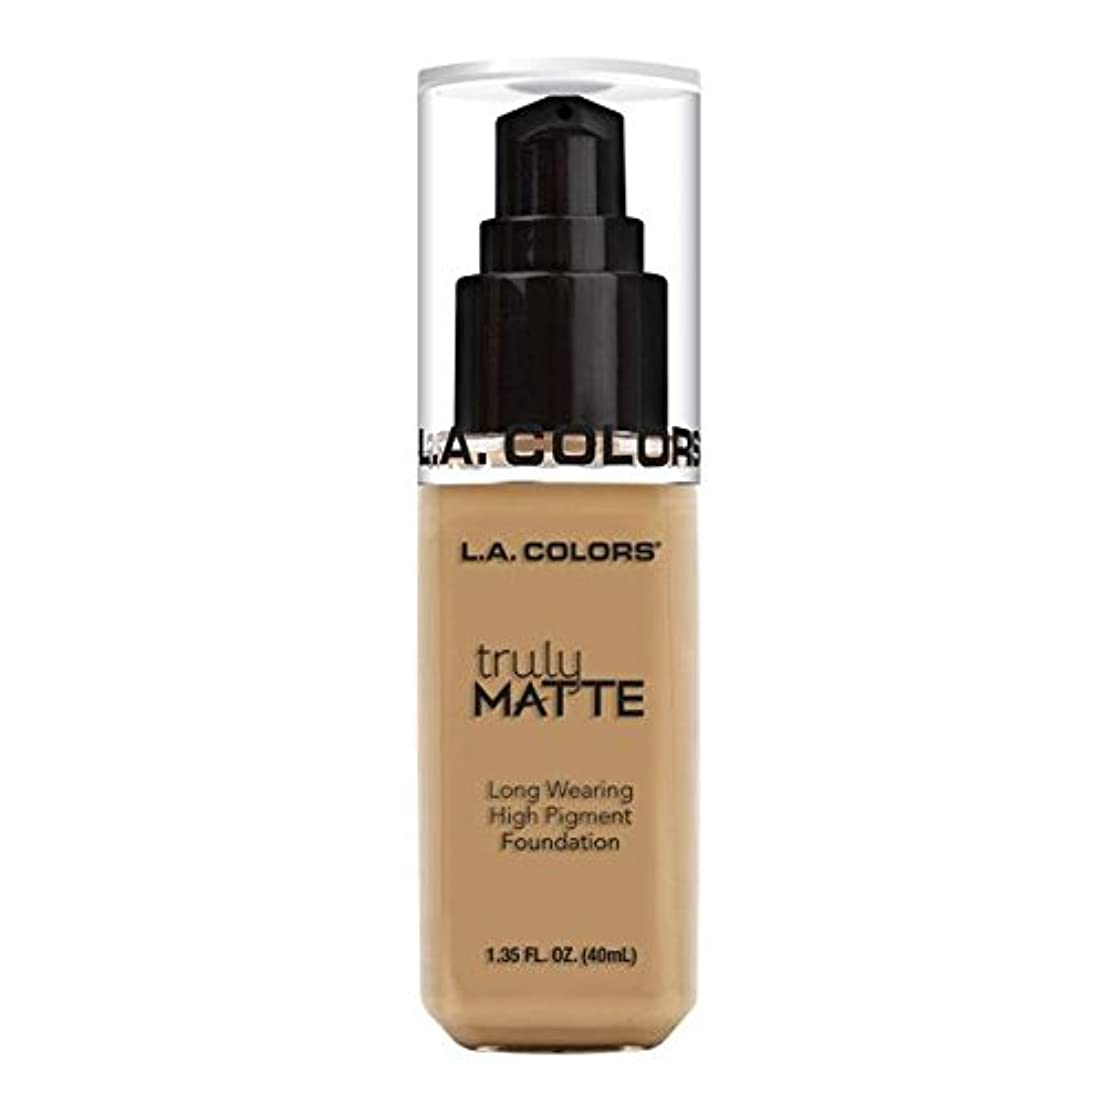 瞑想的不十分きしむ(6 Pack) L.A. COLORS Truly Matte Foundation - Medium Beige (並行輸入品)